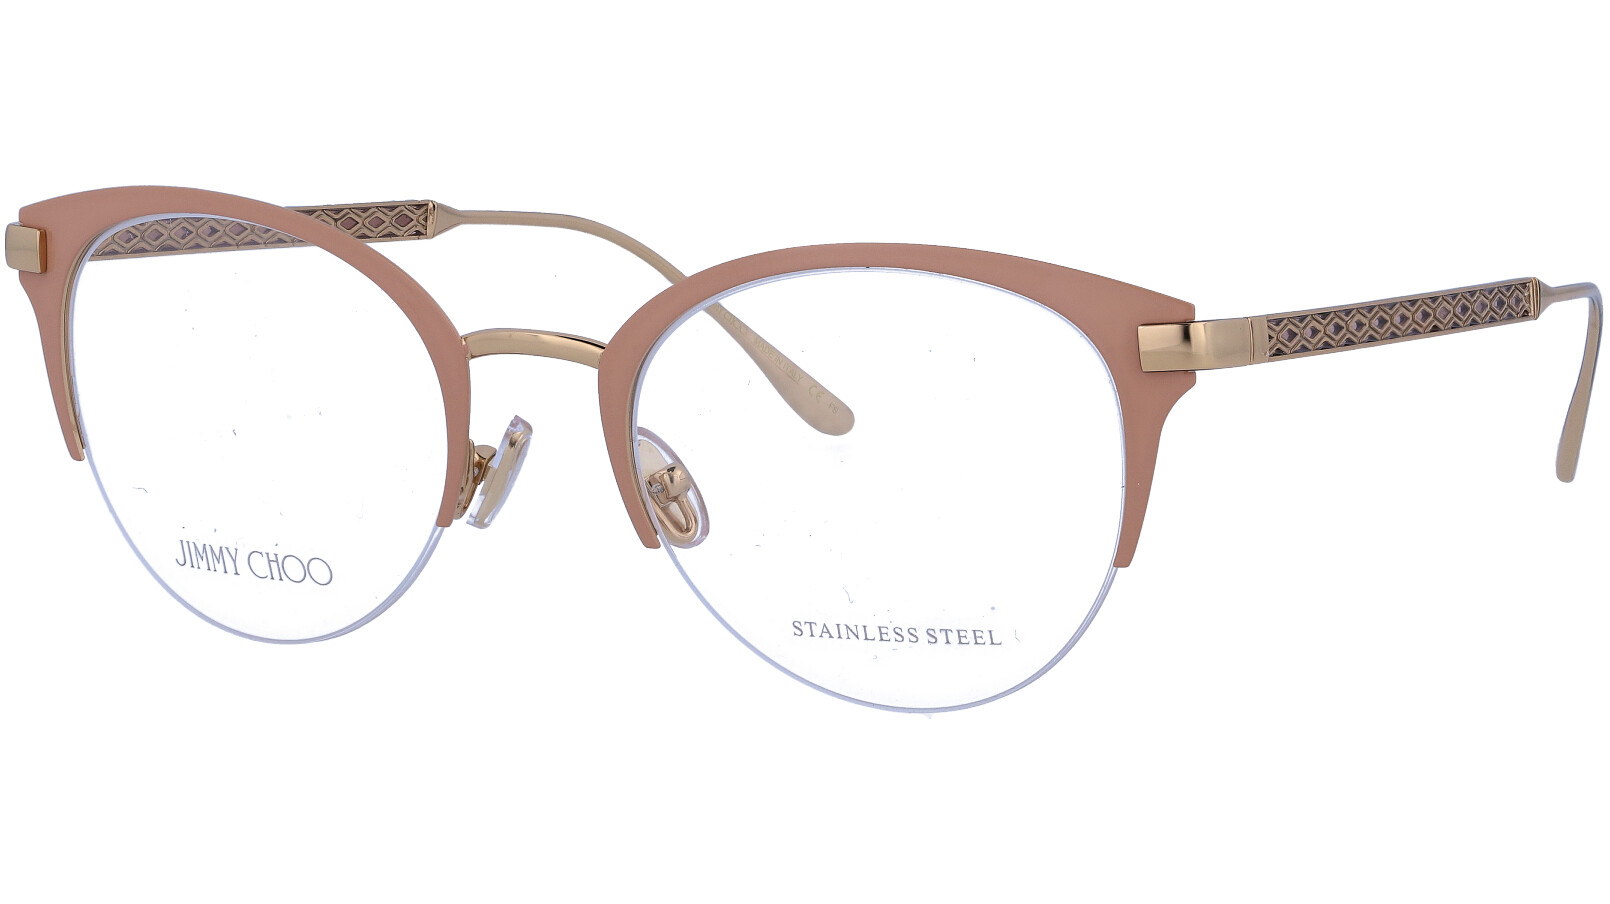 JIMMY CHOO JC215 FWM 50 NUDE Glasses